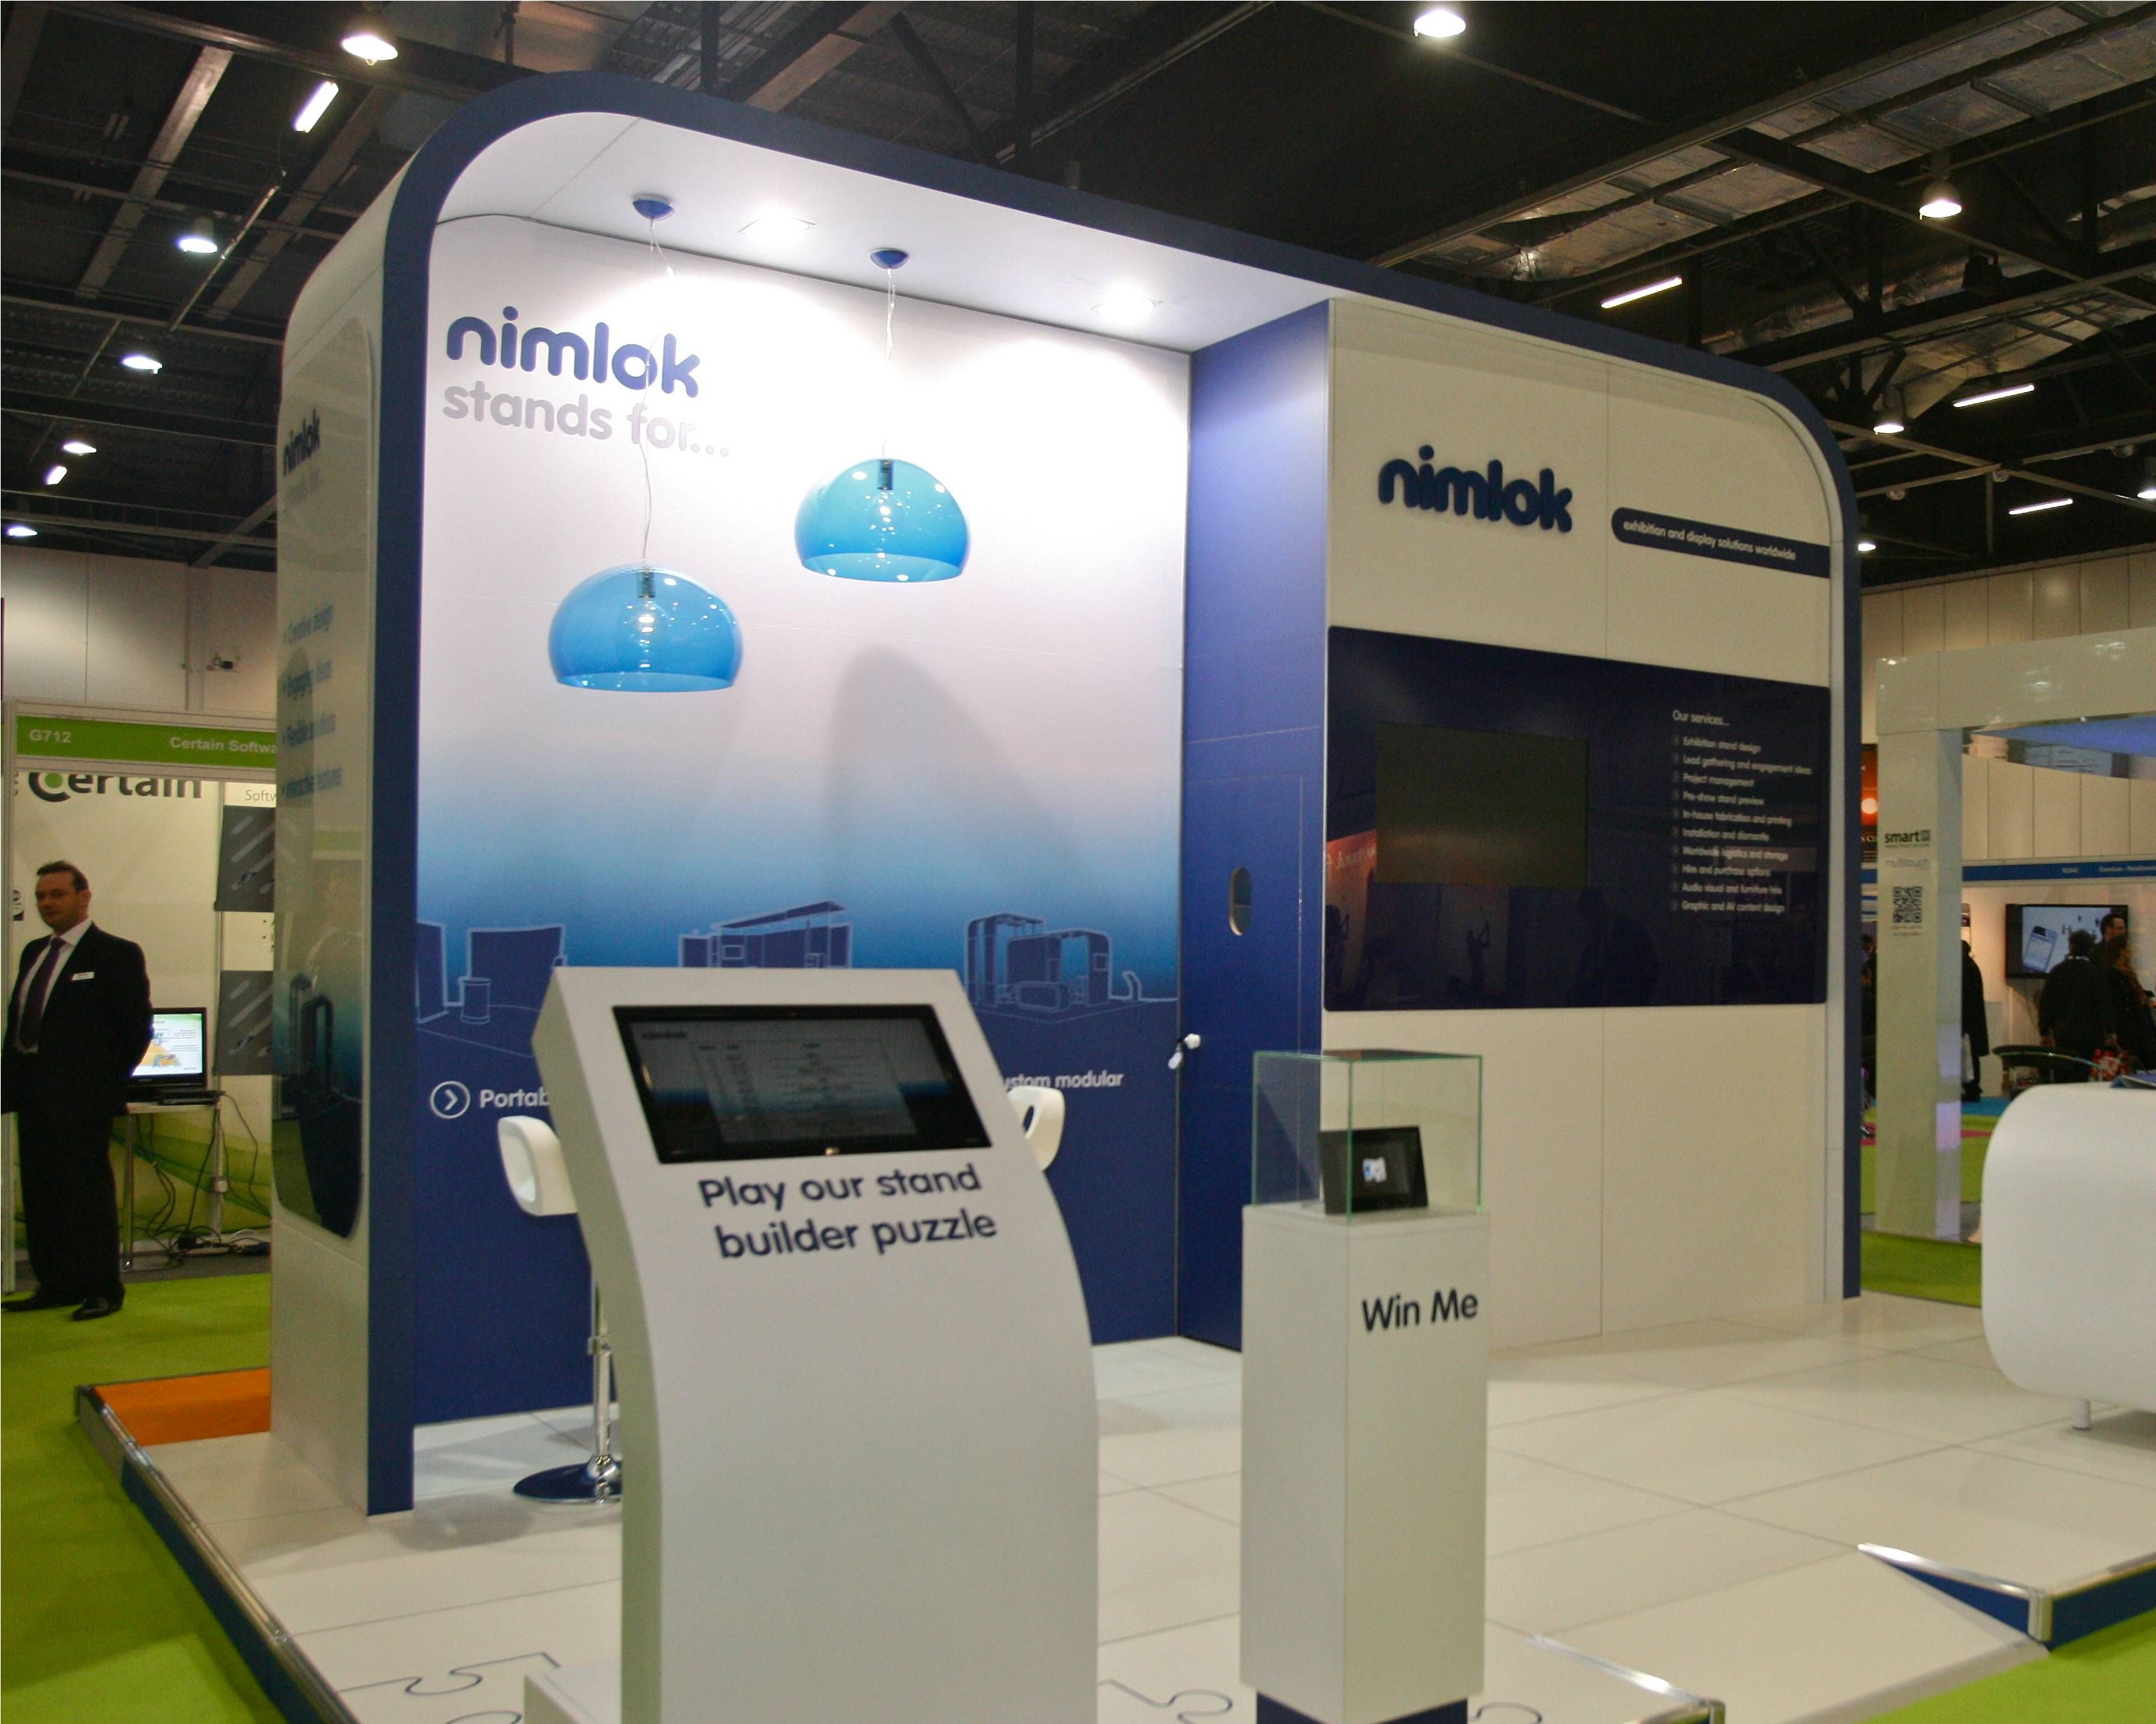 best images about exhibition stands ibm 17 best images about exhibition stands ibm exhibition stands and stand for